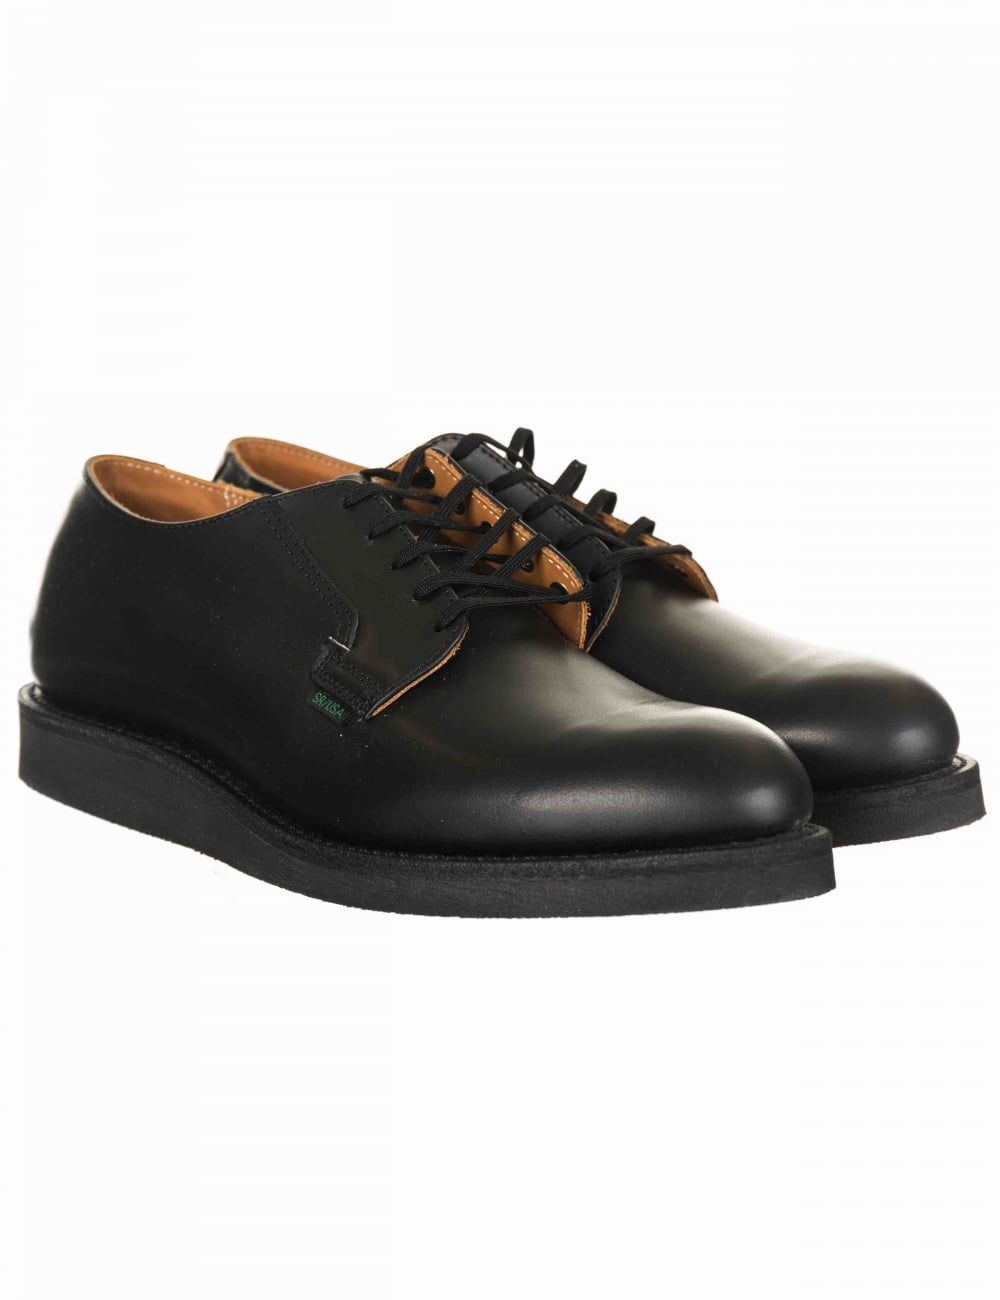 88e21f29 Red Wing 101 Heritage Work Postman Oxford Shoe - Black Chaparral ...